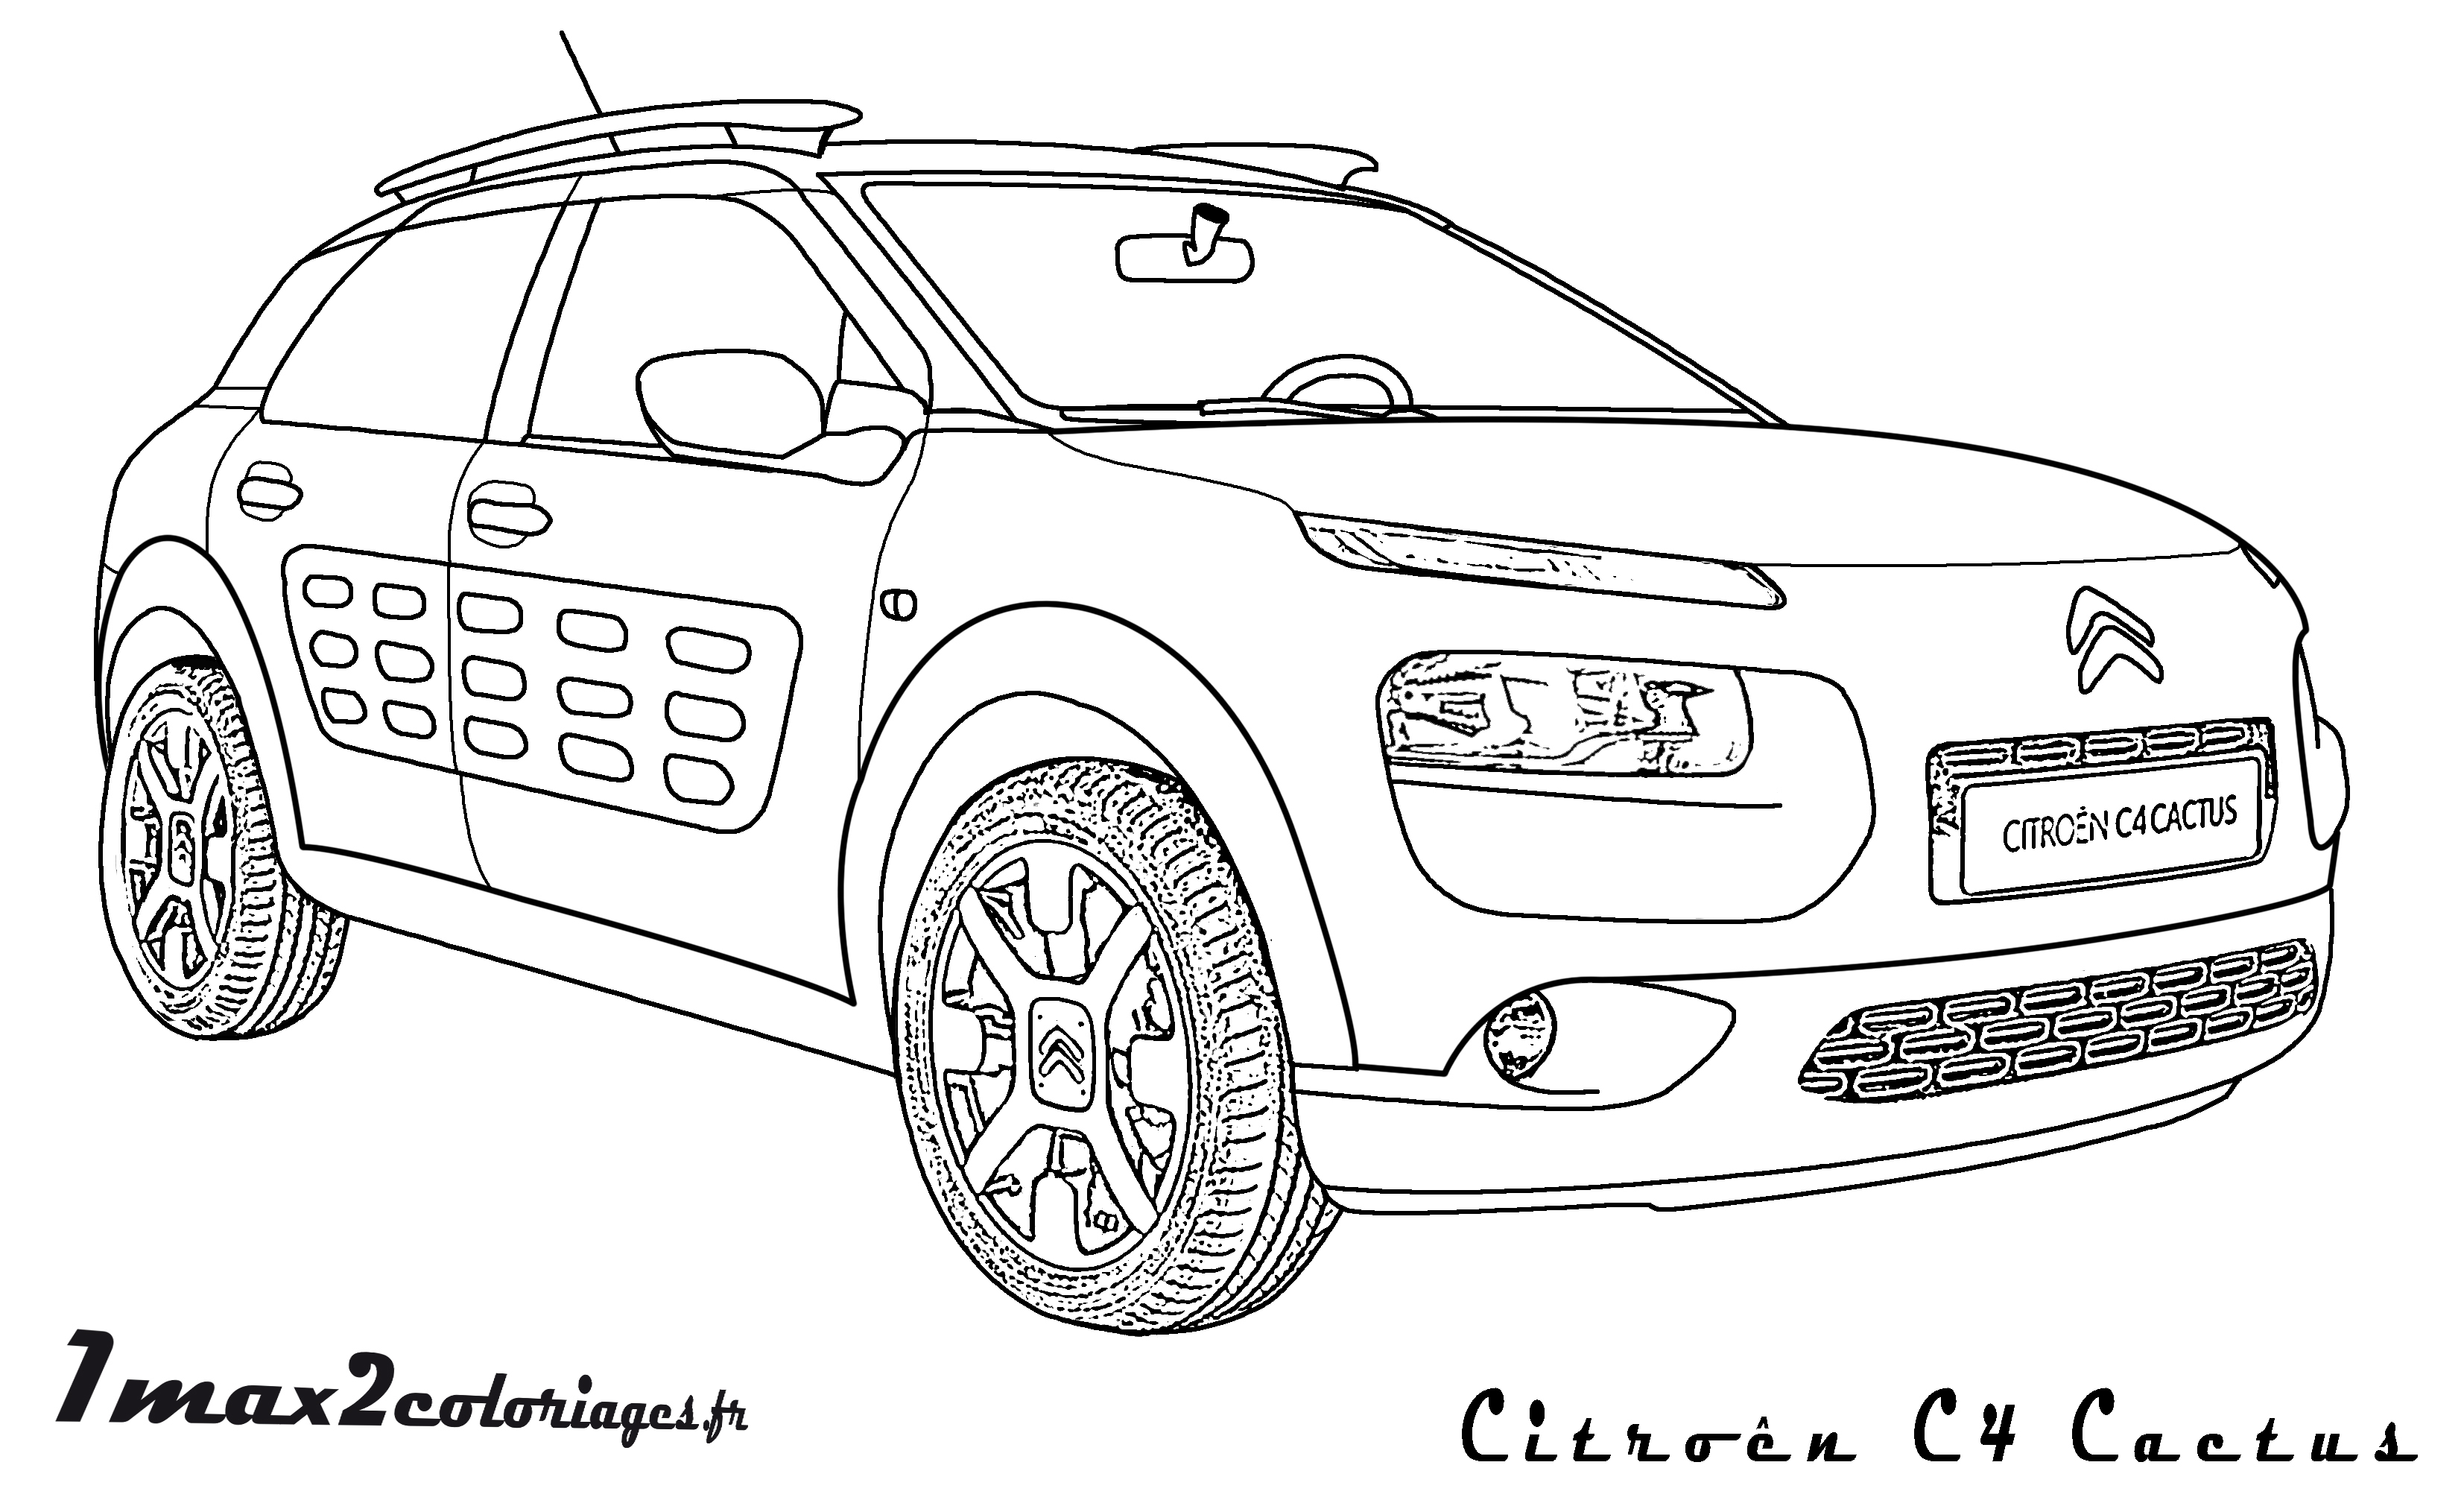 Citroen C4 Cactus on aston martin